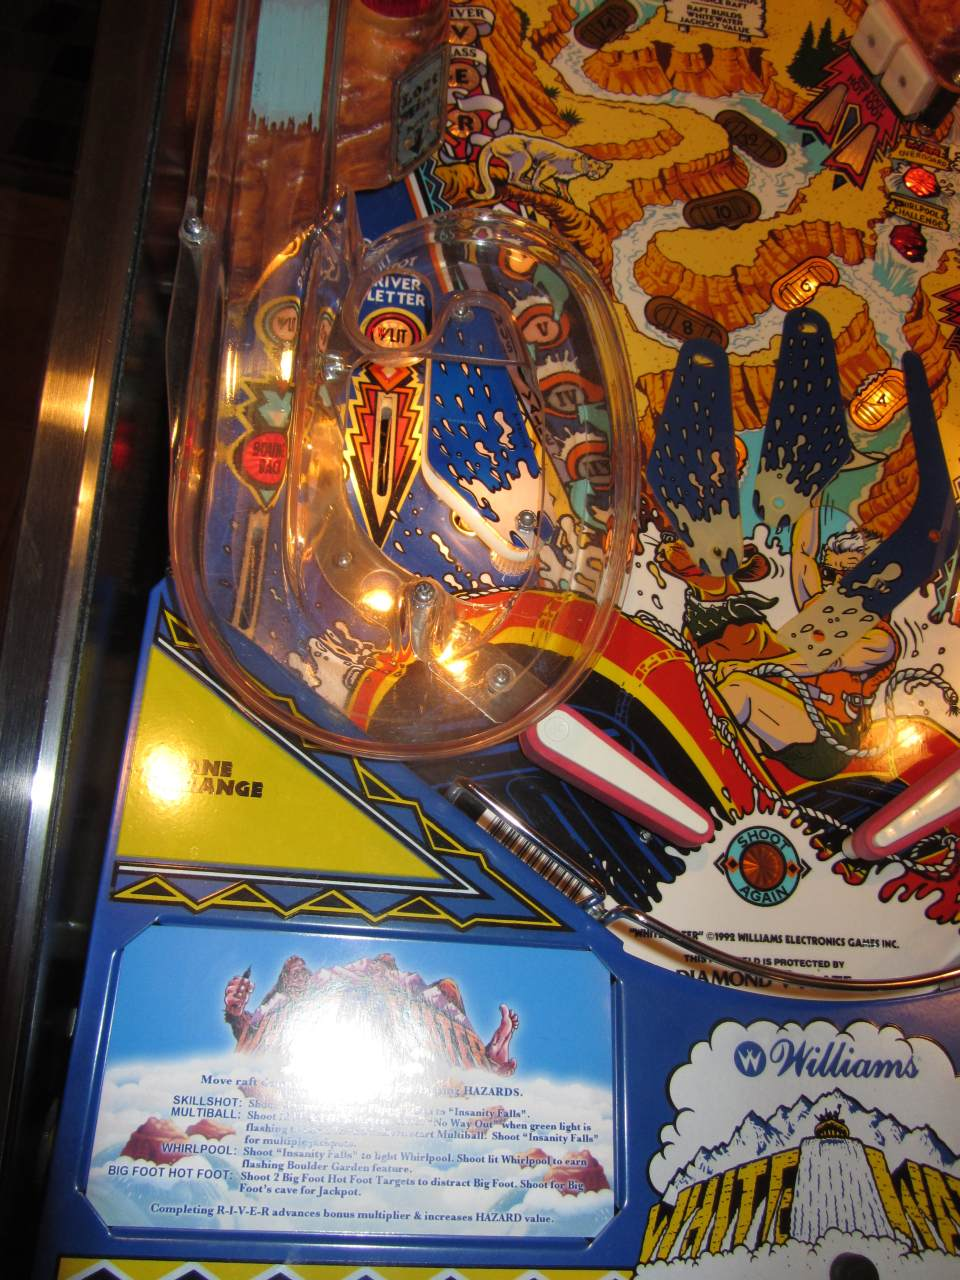 Williams White Water Pinball Machine 1 Pinballmania Llc